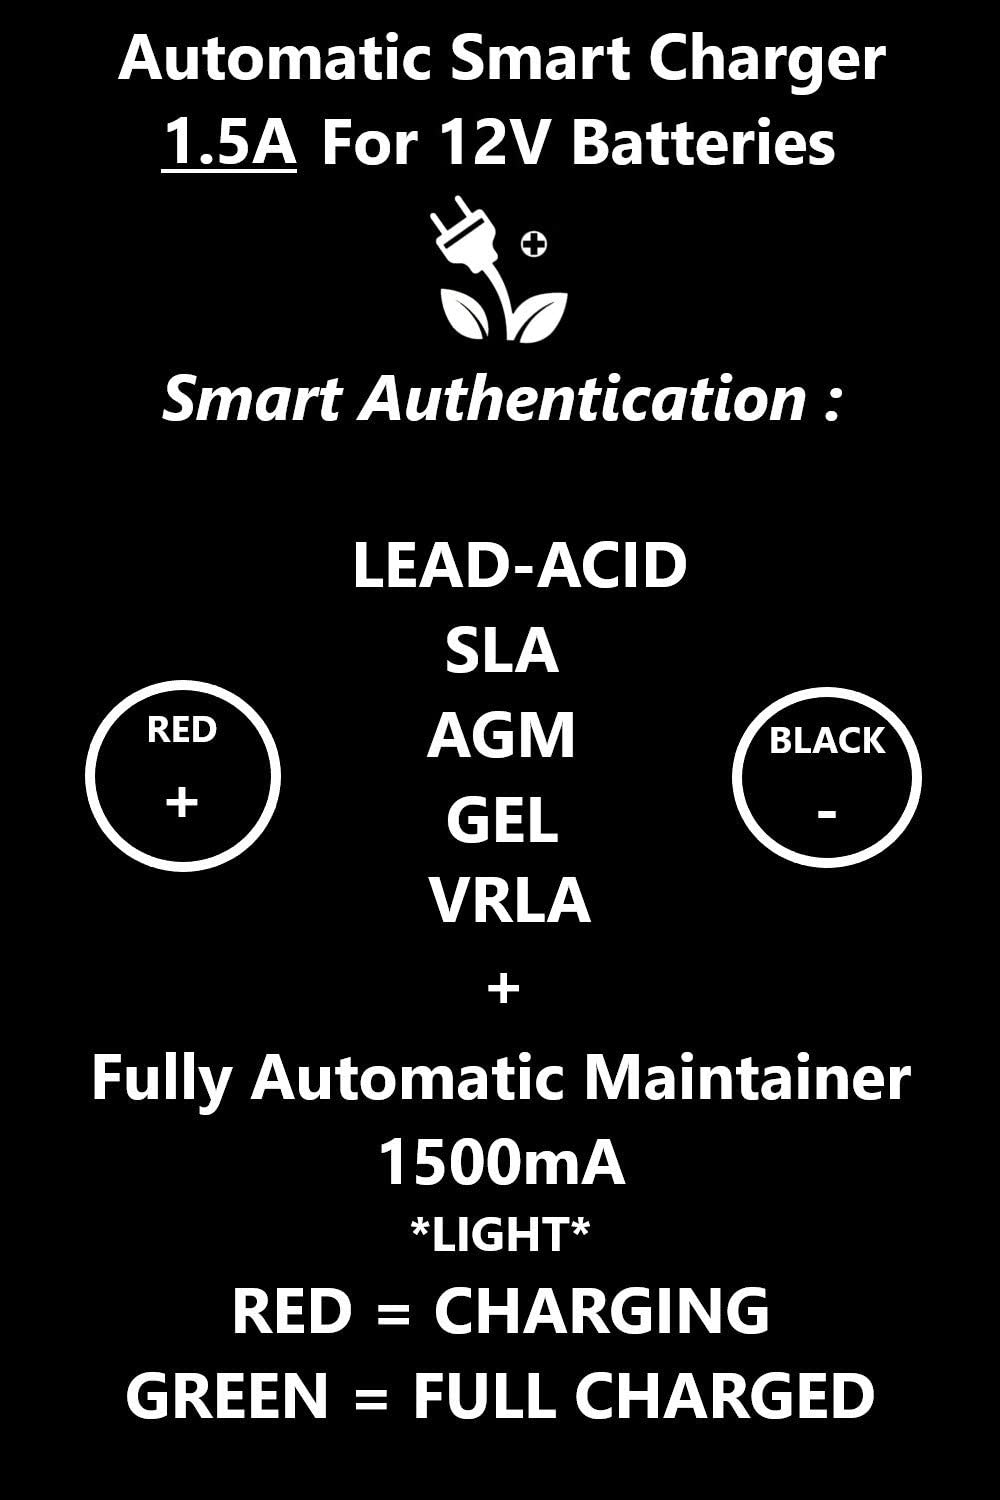 Boat Multi-Protections Lawn tractor 12V Charger Smart Automatic Battery Charger Maintainer 1.5A Trickle for Sealed Lead Acid SLA GEL AGM Car RV Truck 1500mA 3 Stage Charging Auto-Stop Charging Motorcycle Electric toys